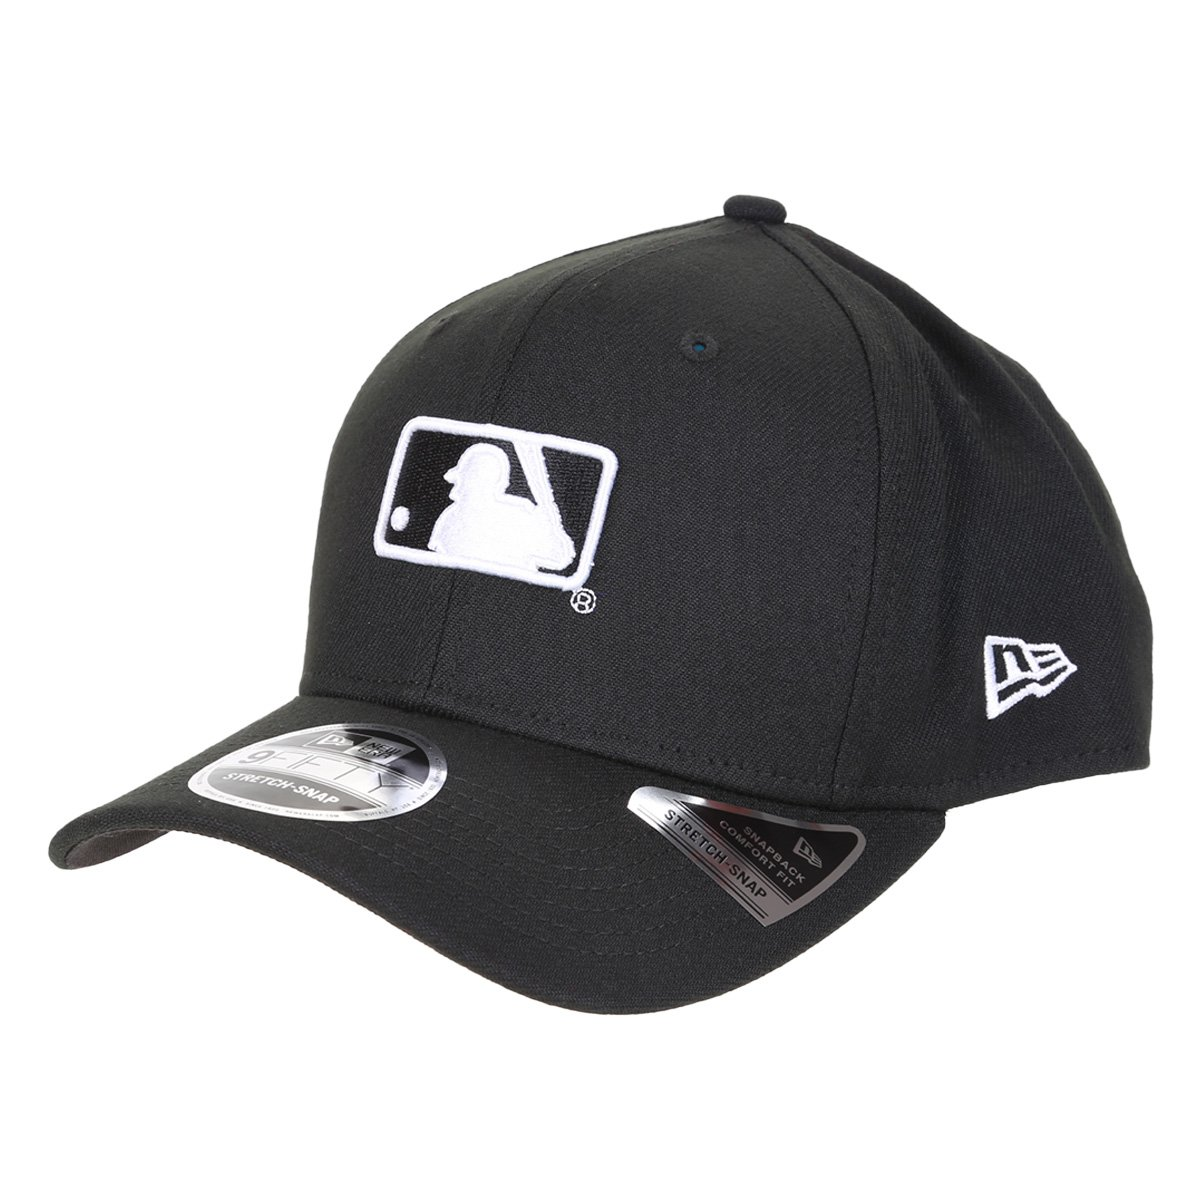 Boné New Era MLB  Aba Curva Snapback Rave Space Glow In The Dark 9Fifty